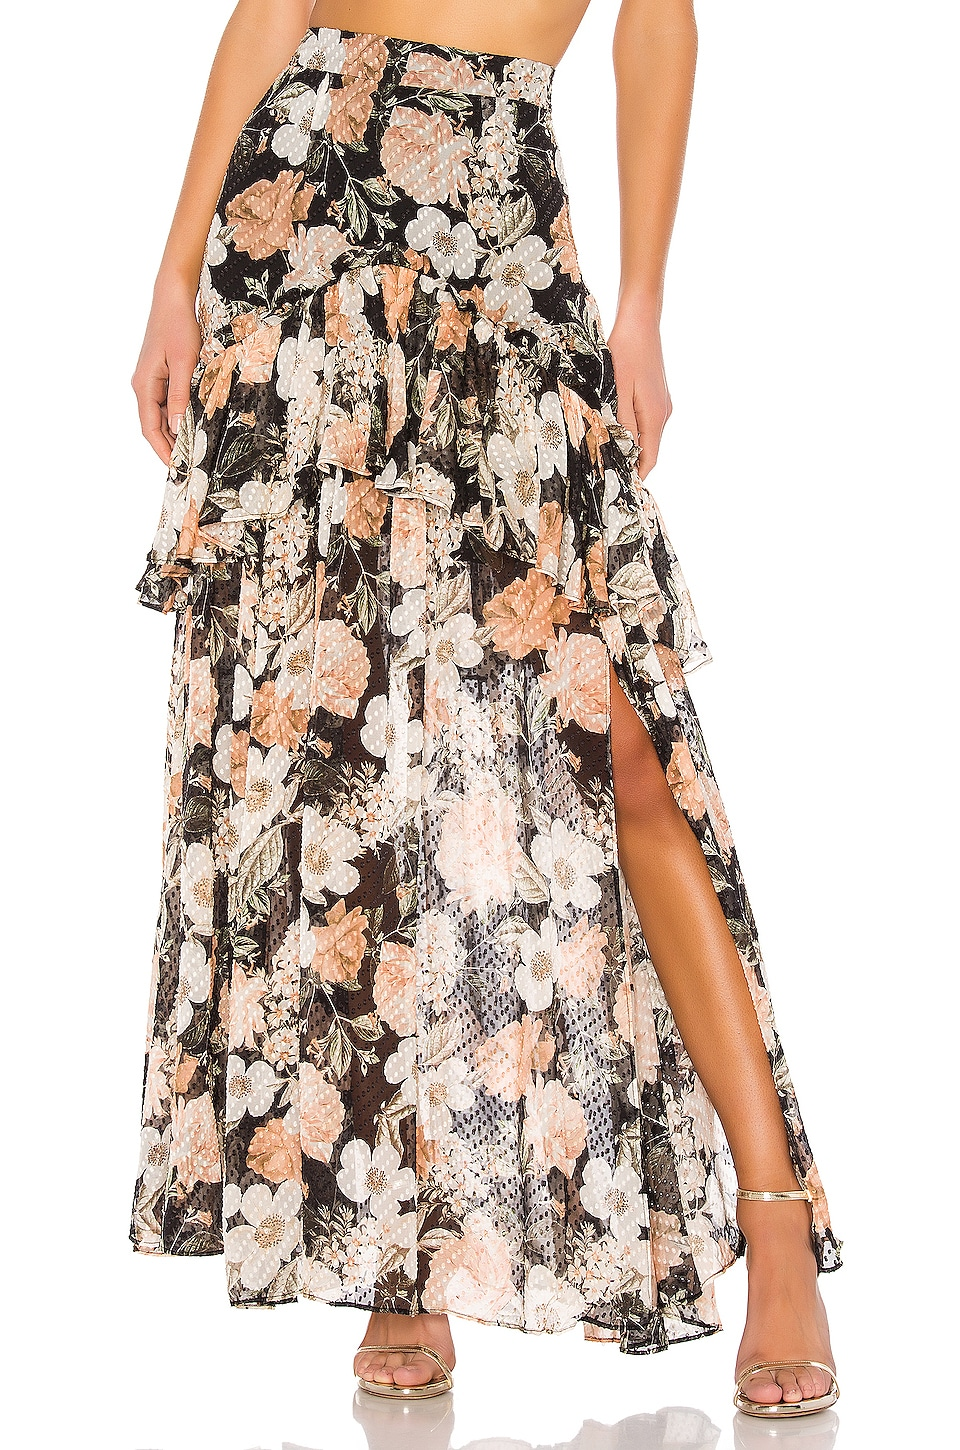 THURLEY Tiamo Skirt in Eden Floral & Summer Black